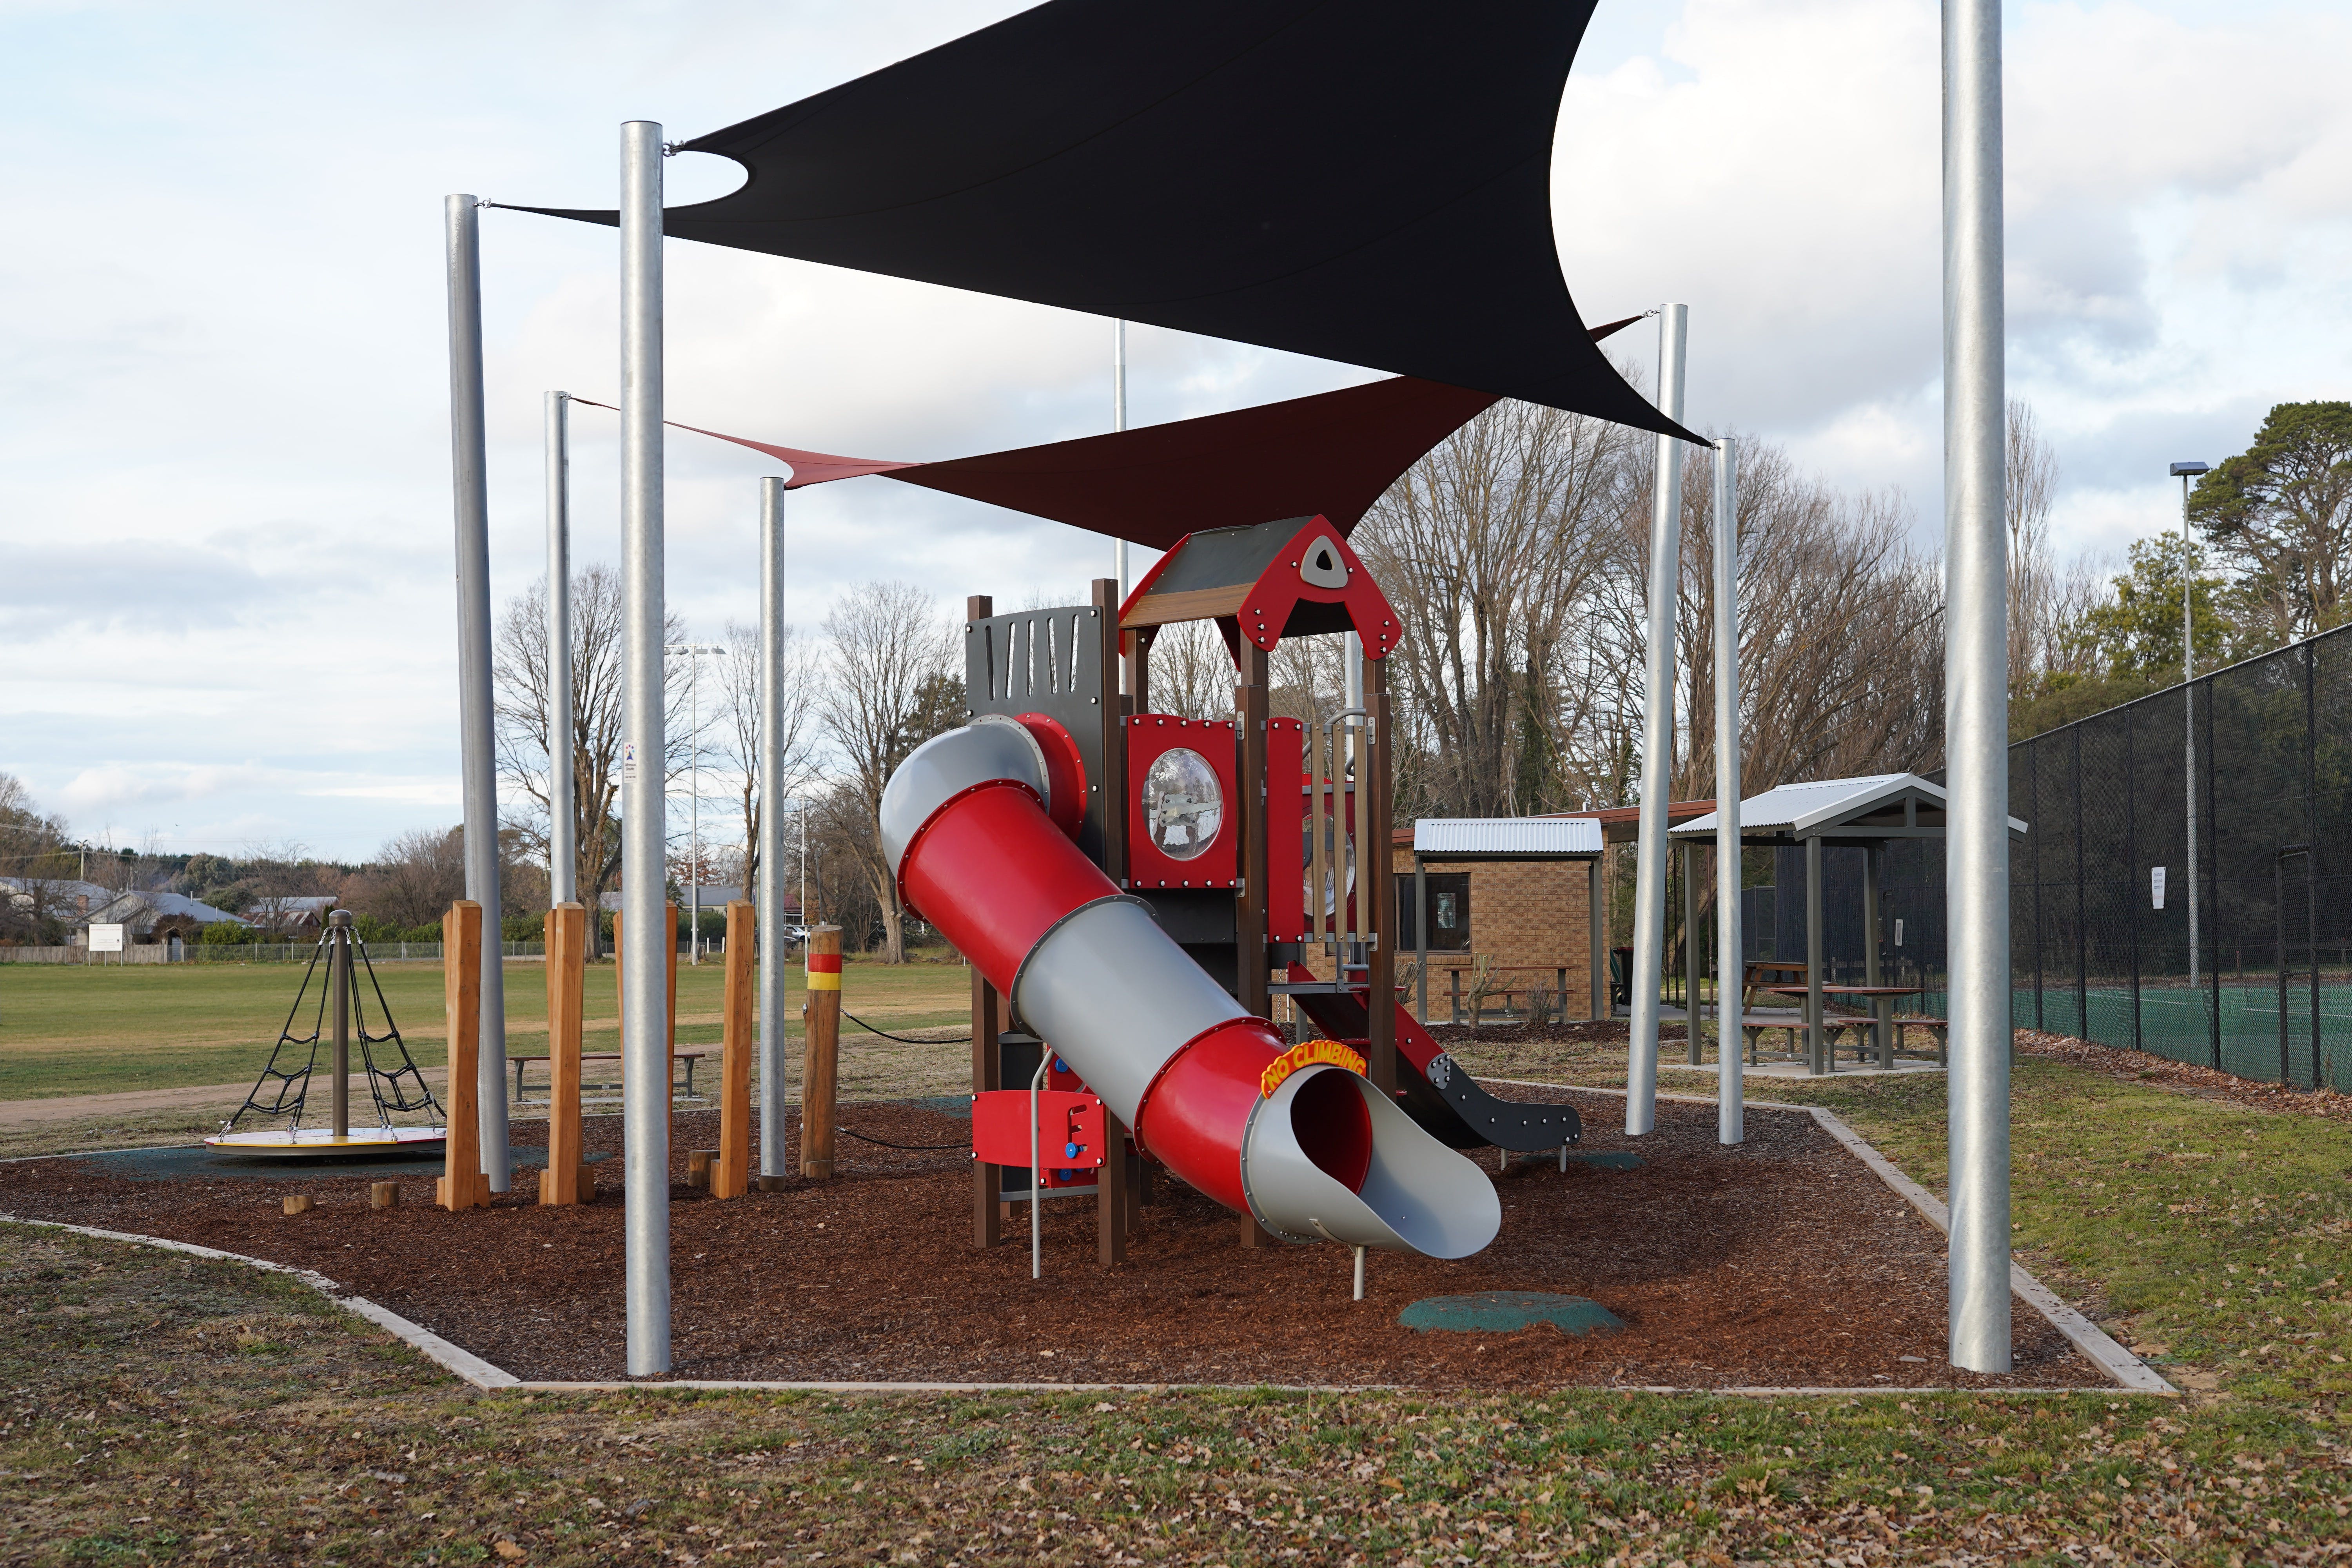 Braidwood Recreation Grounds and Playground - Accommodation Kalgoorlie